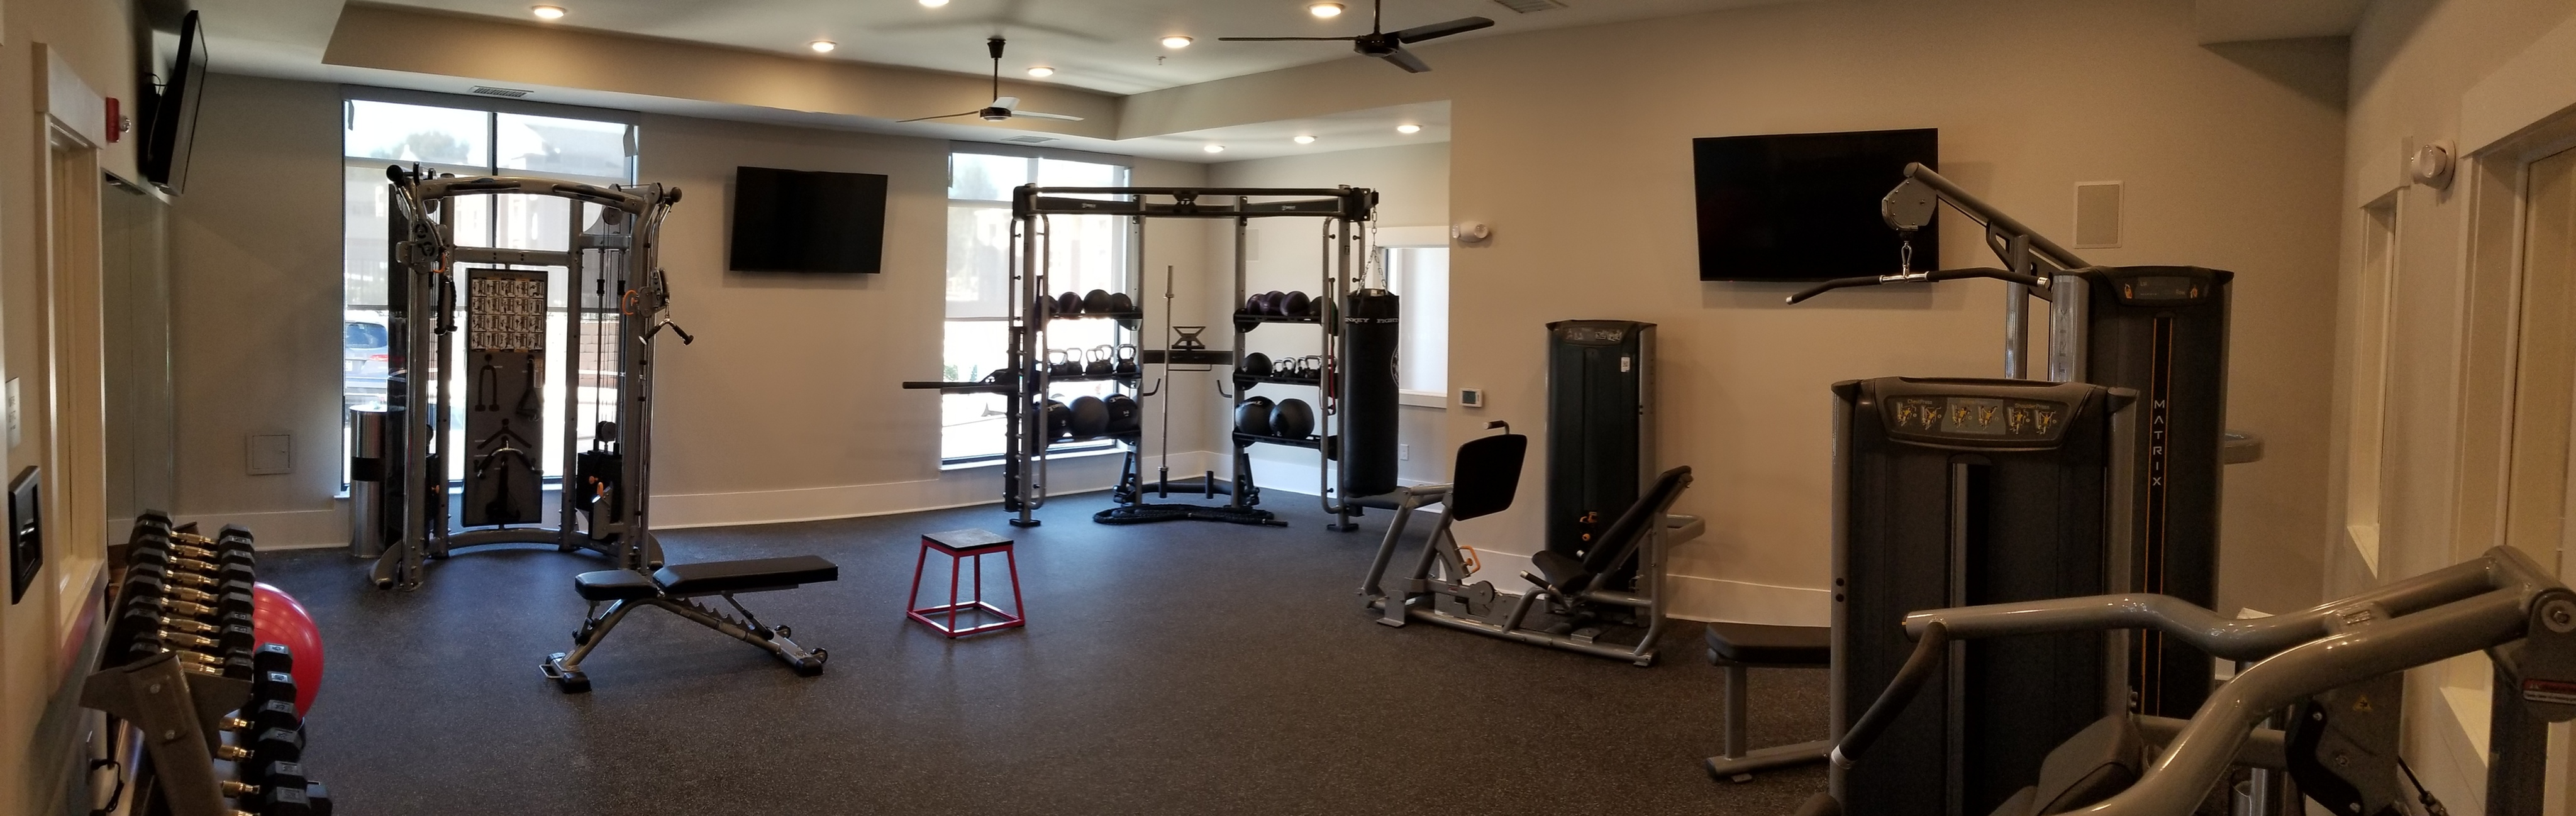 State-of-the-Art Fitness Center | Apartments In Fort Mill SC | Kingsley Apartments